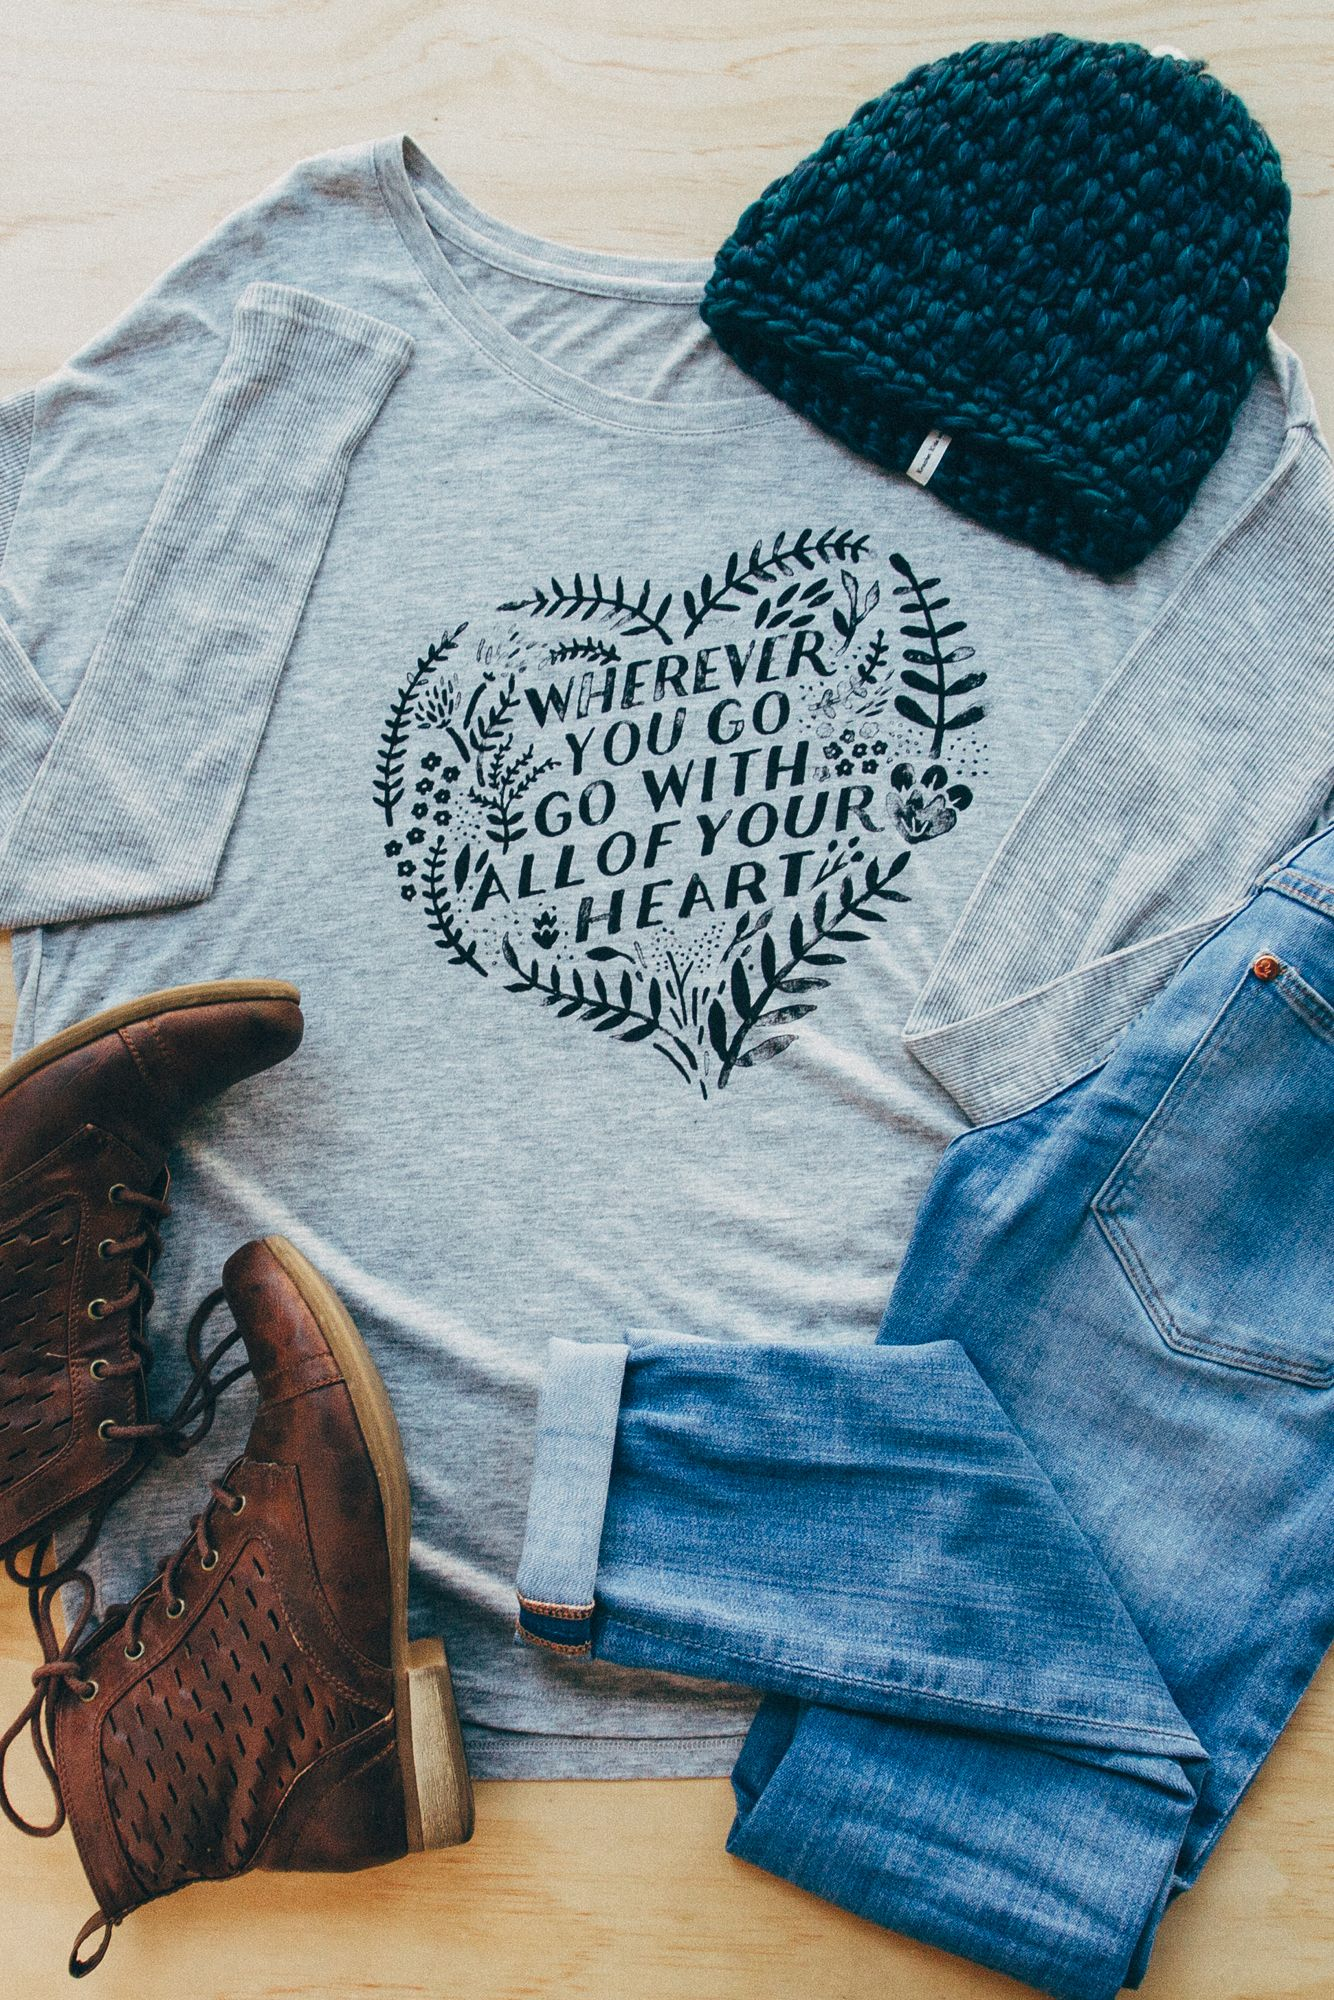 That's the perfect #fall outfit right there! Cozy, comfy ...